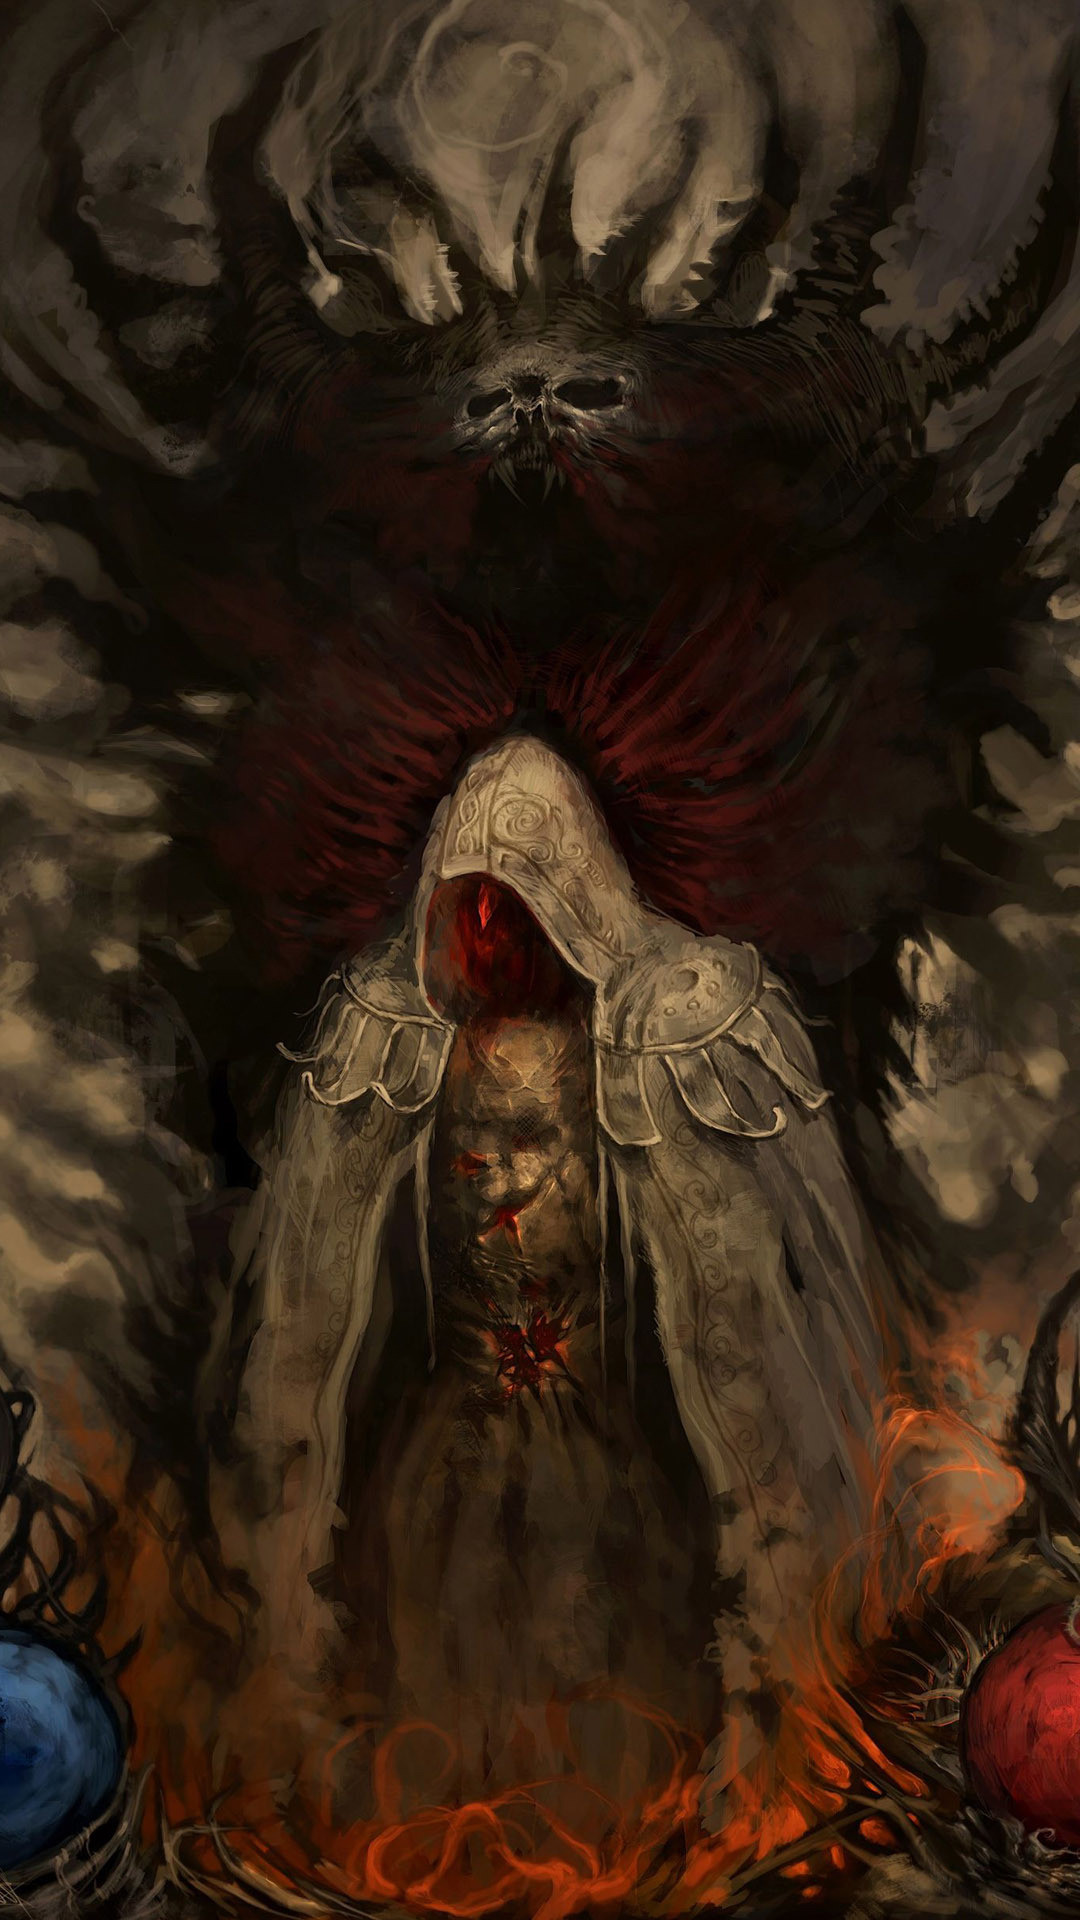 Res: 1080x1920, Incoming Search Terms Diablo 3 Wallpaper Diablo Diablo 3 Diabolo Iii 2